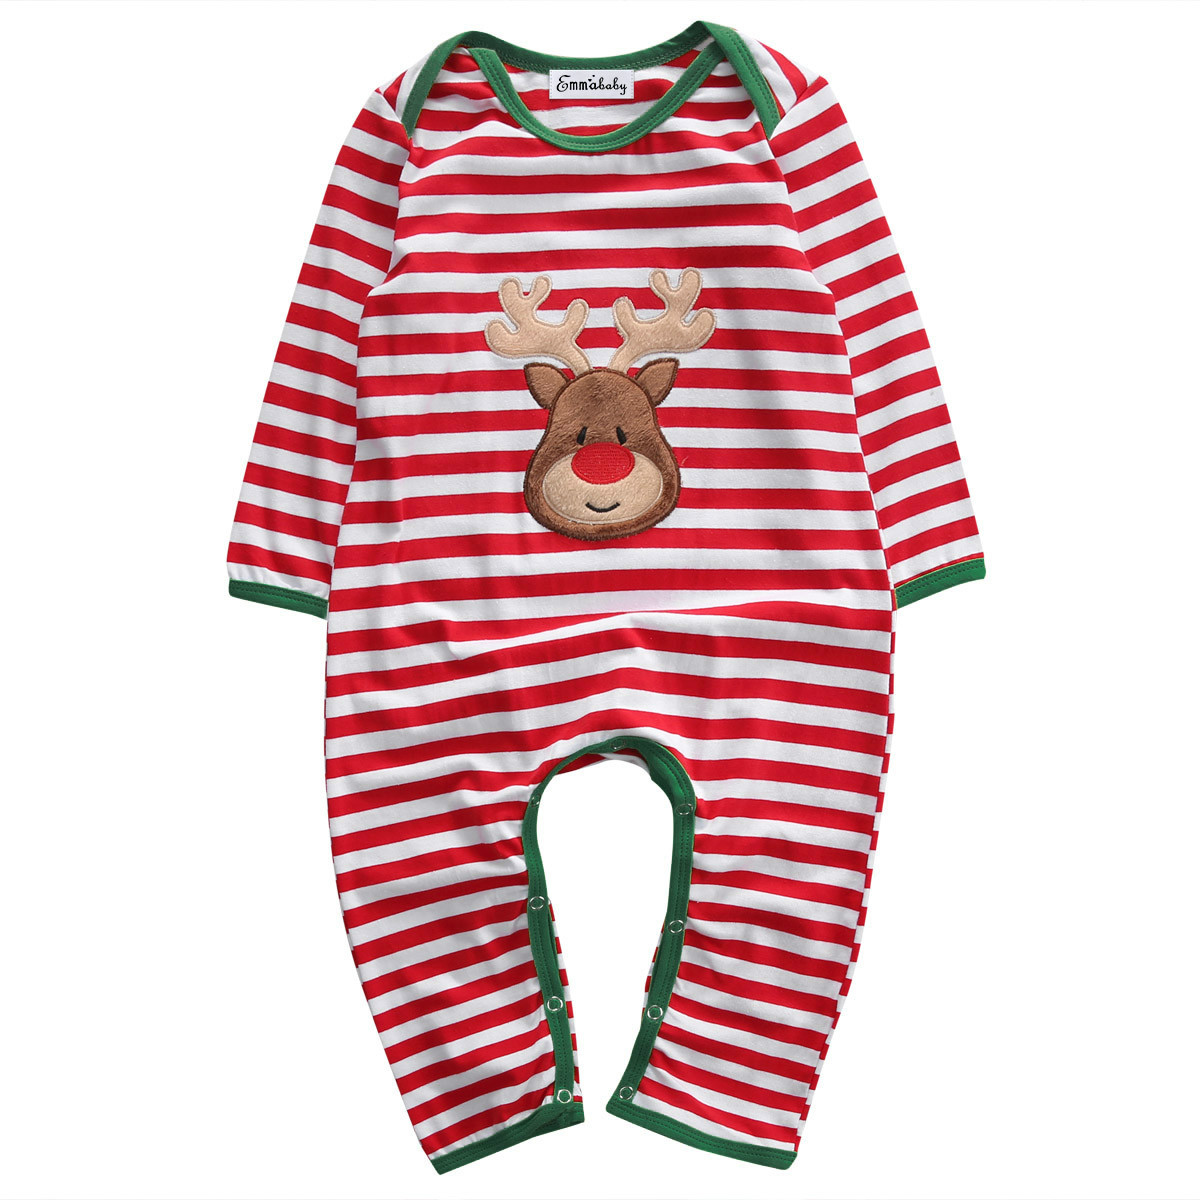 Emmababy Newborn Baby Christmas Pajamas Unisex Infant Boy Girls Clothes Playsuit Romper Pullover Costume Outfit Gift